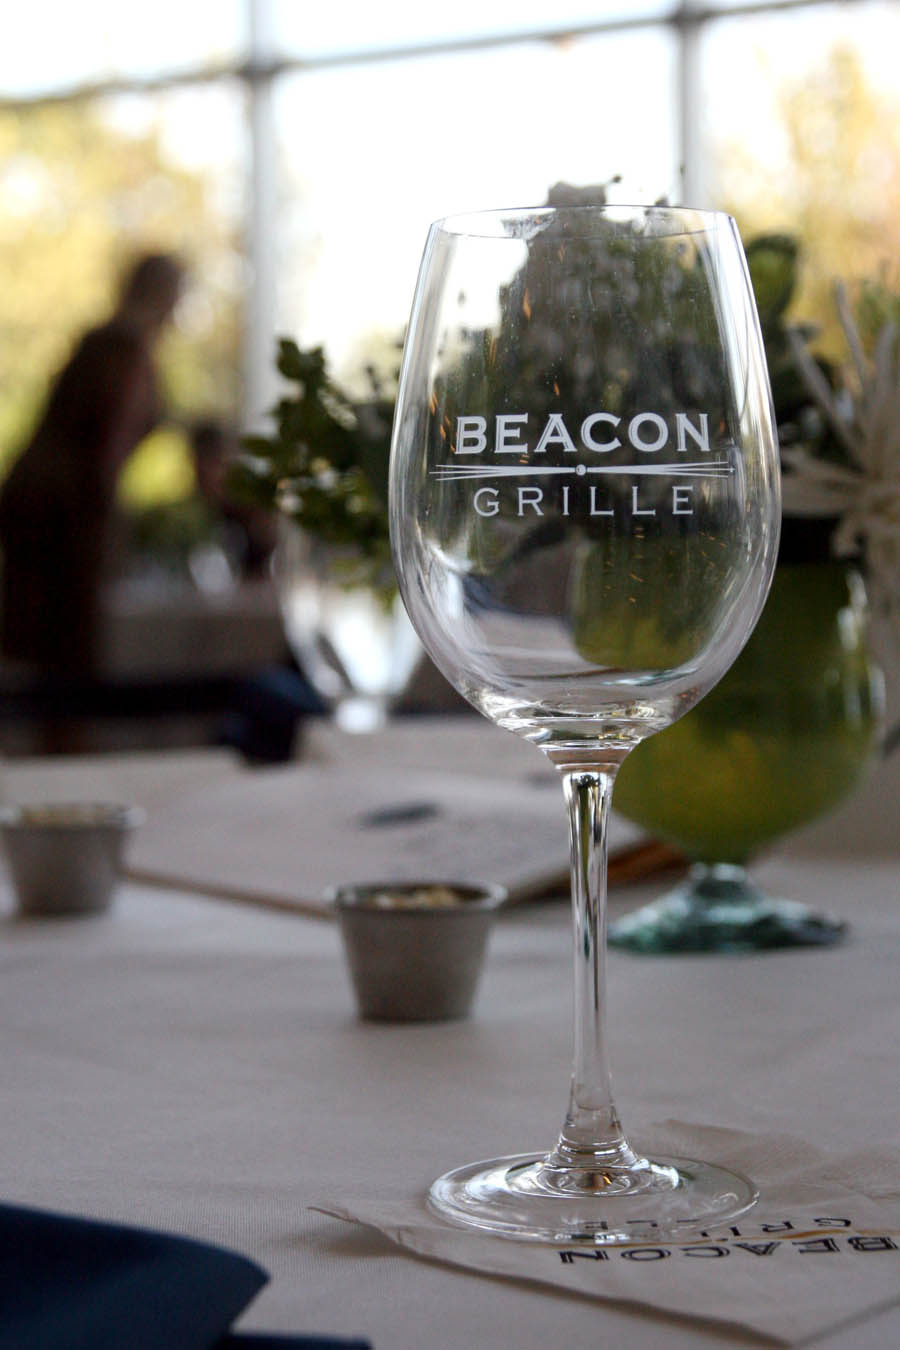 Beacon%20grille%20wine%20glass.original